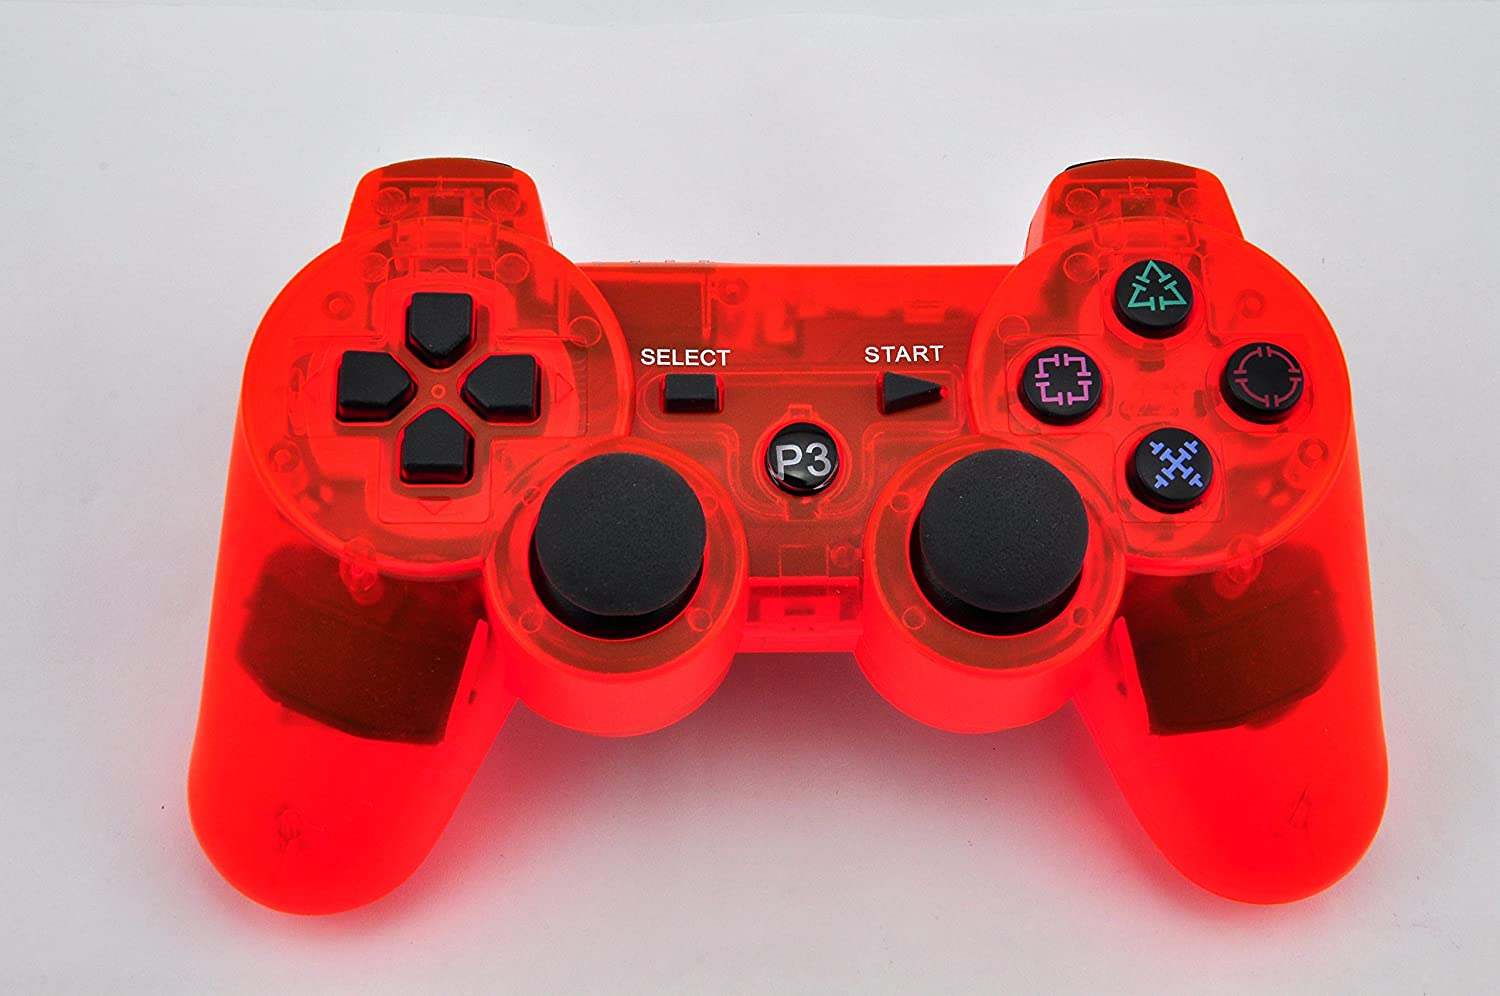 Senkon® Bluetooth Wireless Controller For Sony Playstation 3 In Transparent Light Red